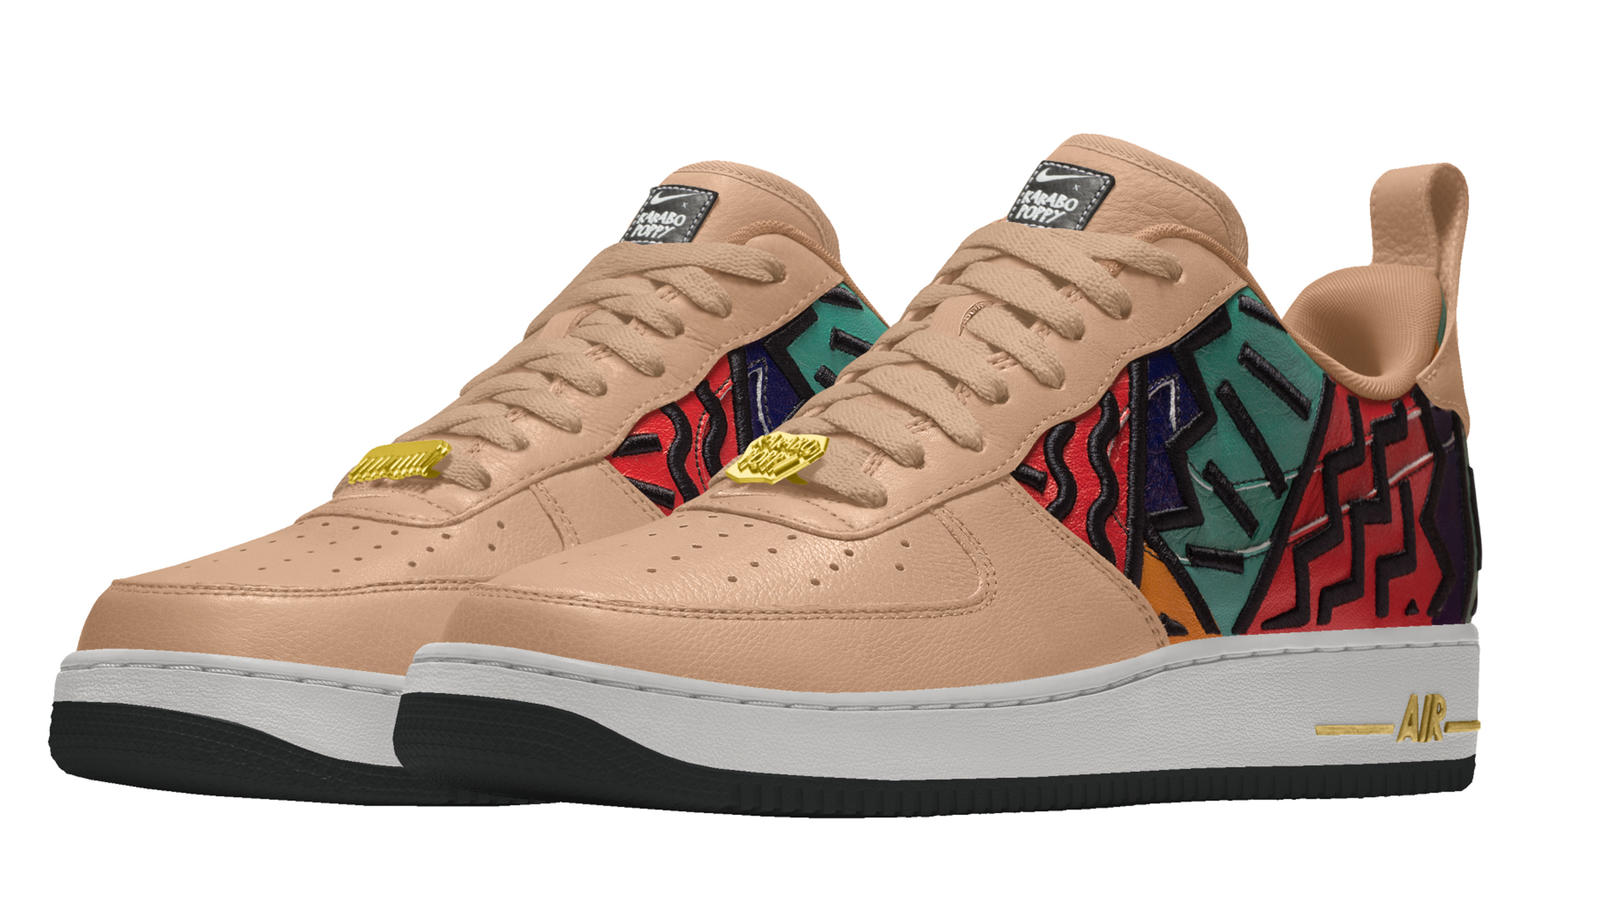 Karabo Poppy Nike By You Air Force 1 3